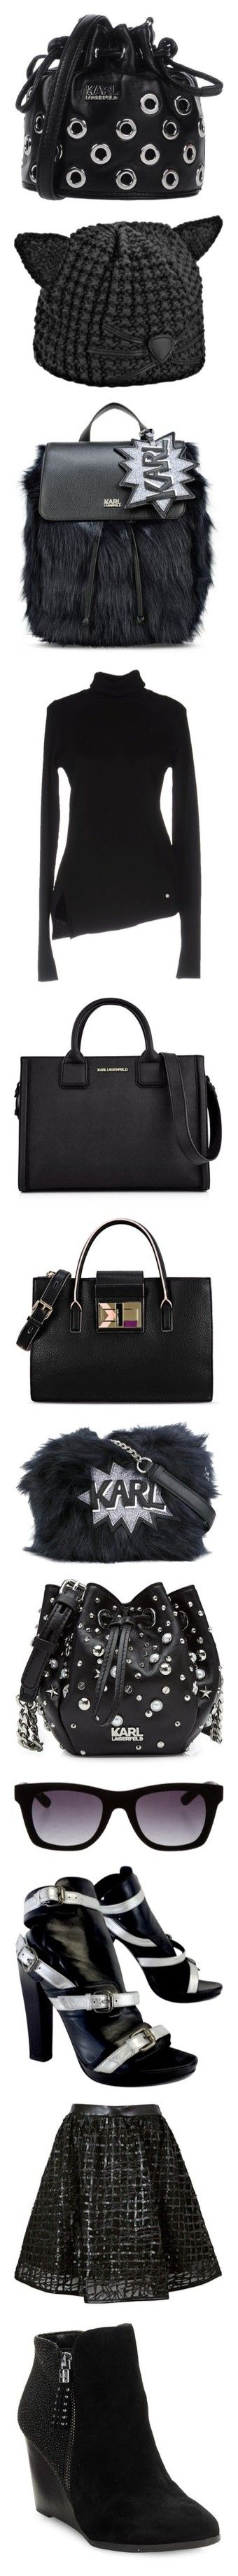 """Karl Lagerfeld"" by tina-teena ❤ liked on Polyvore featuring bags, handbags, shoulder bags, black, drawstring purse, man bag, handbags shoulder bags, karl lagerfeld purse, handbag purse and accessories"